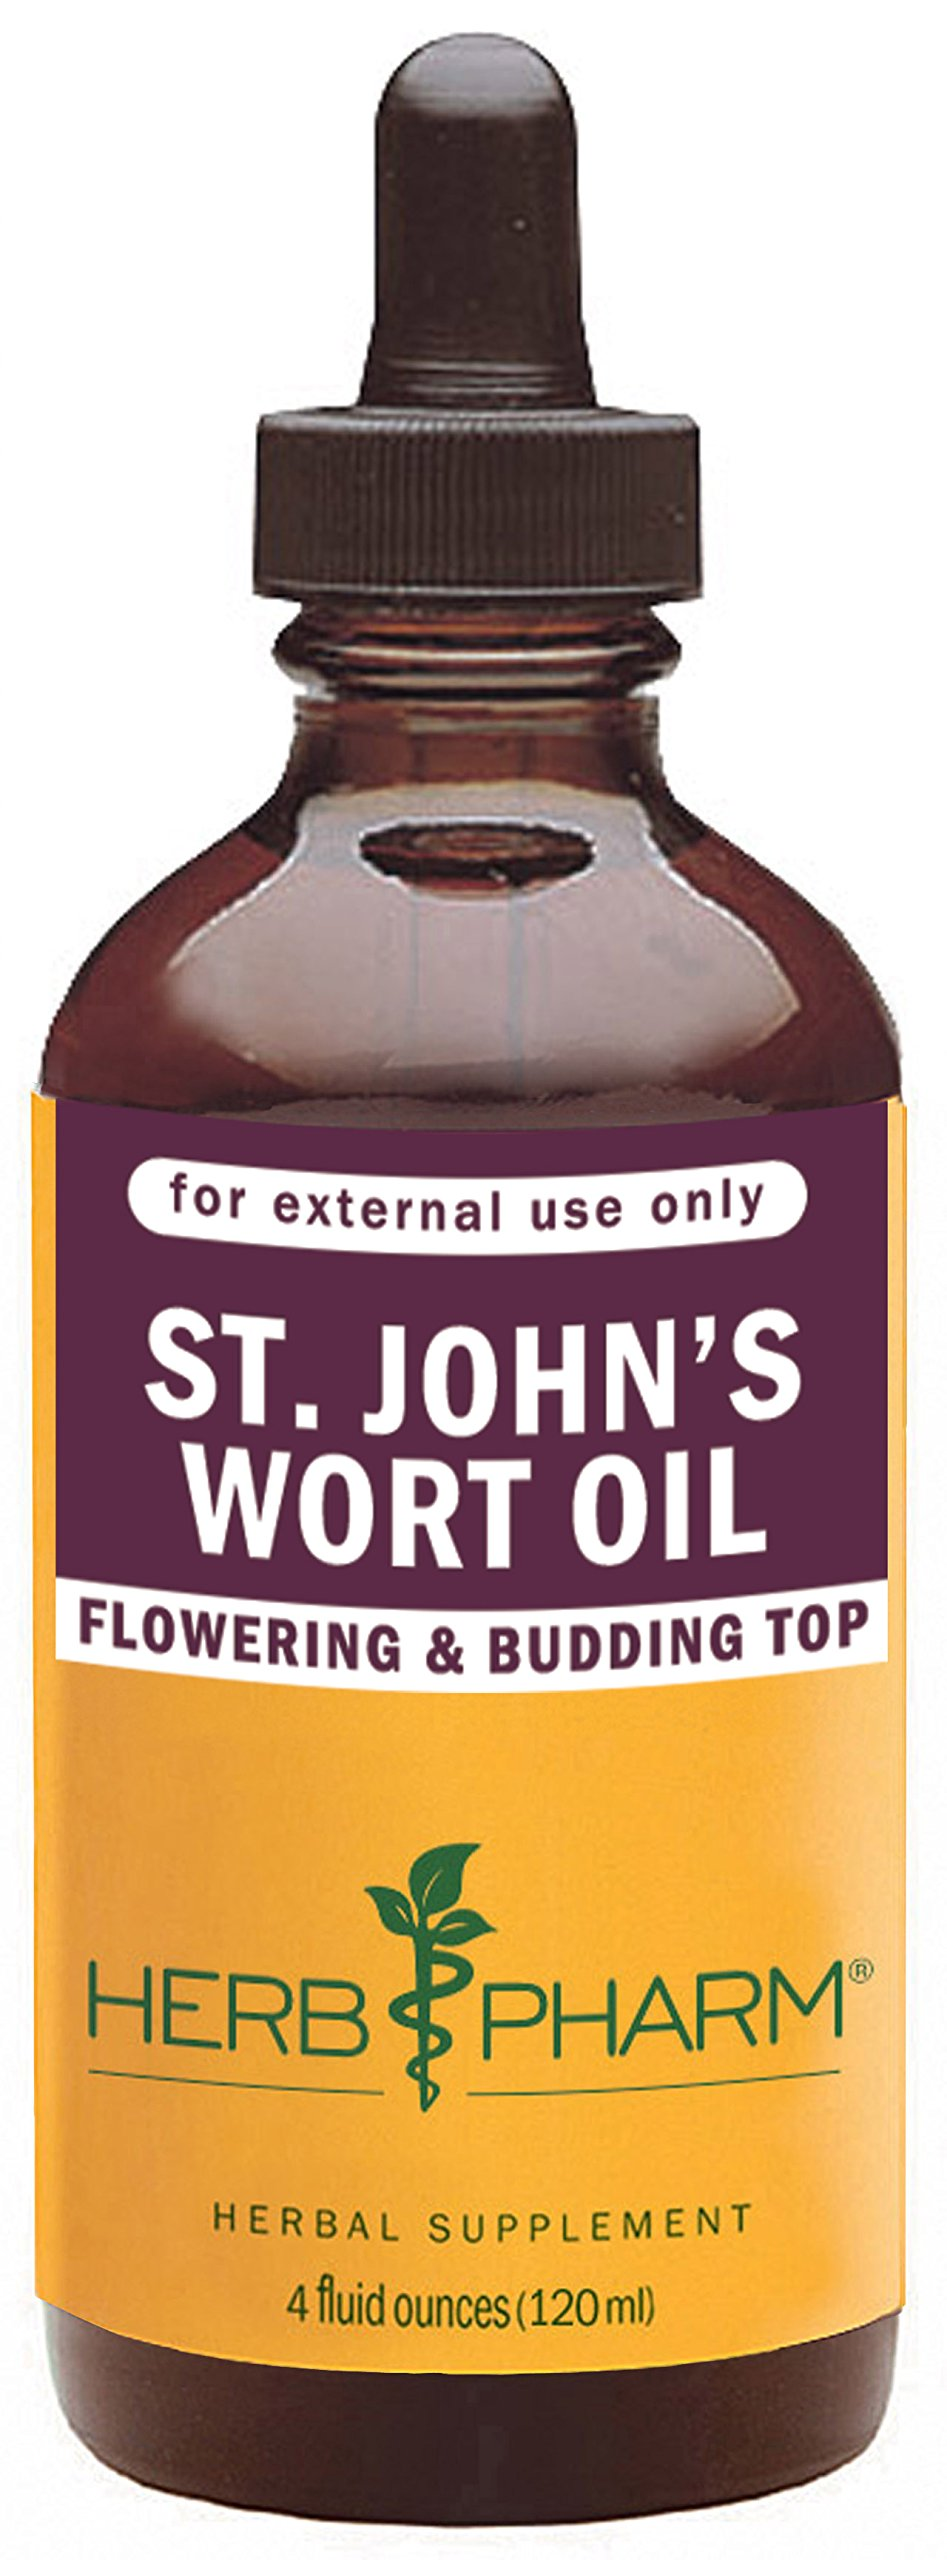 St. John's Wort Topical Oil